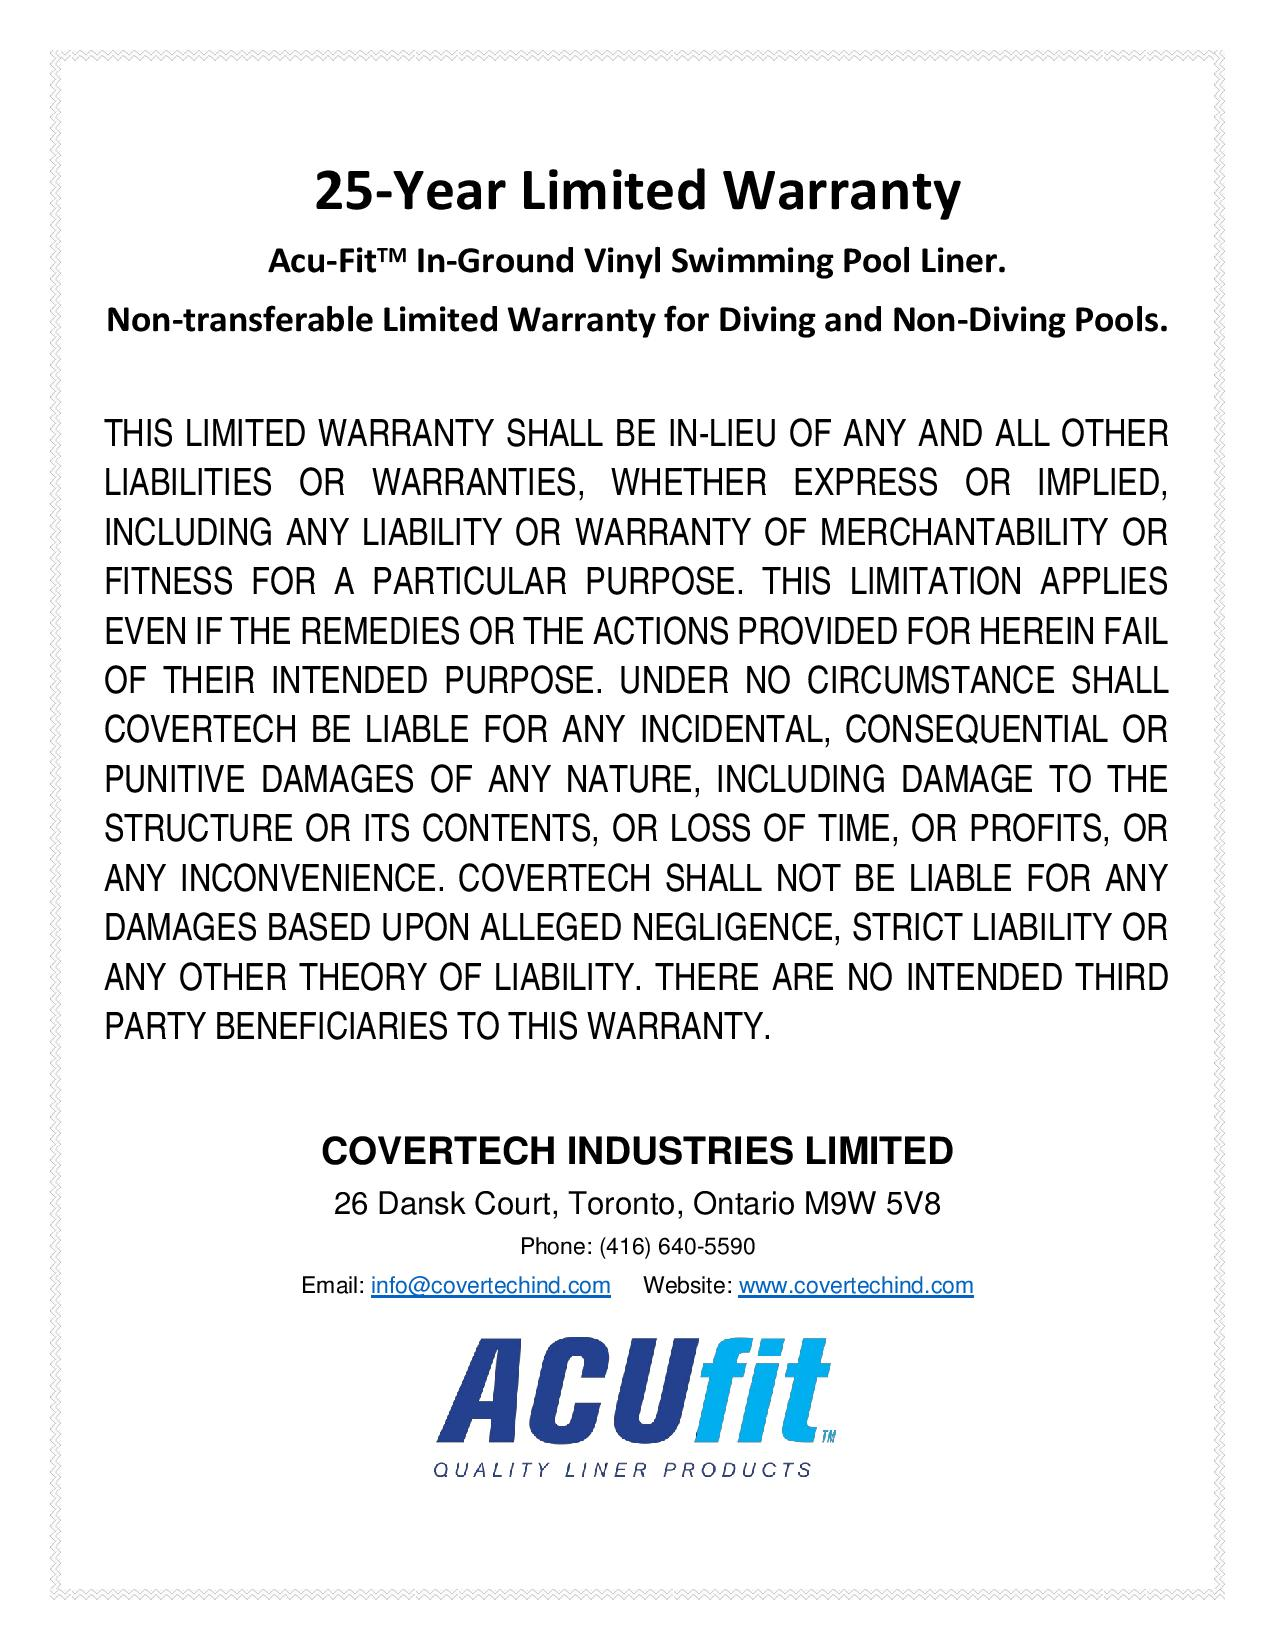 25 Year Limited Warranty Covertech Industries